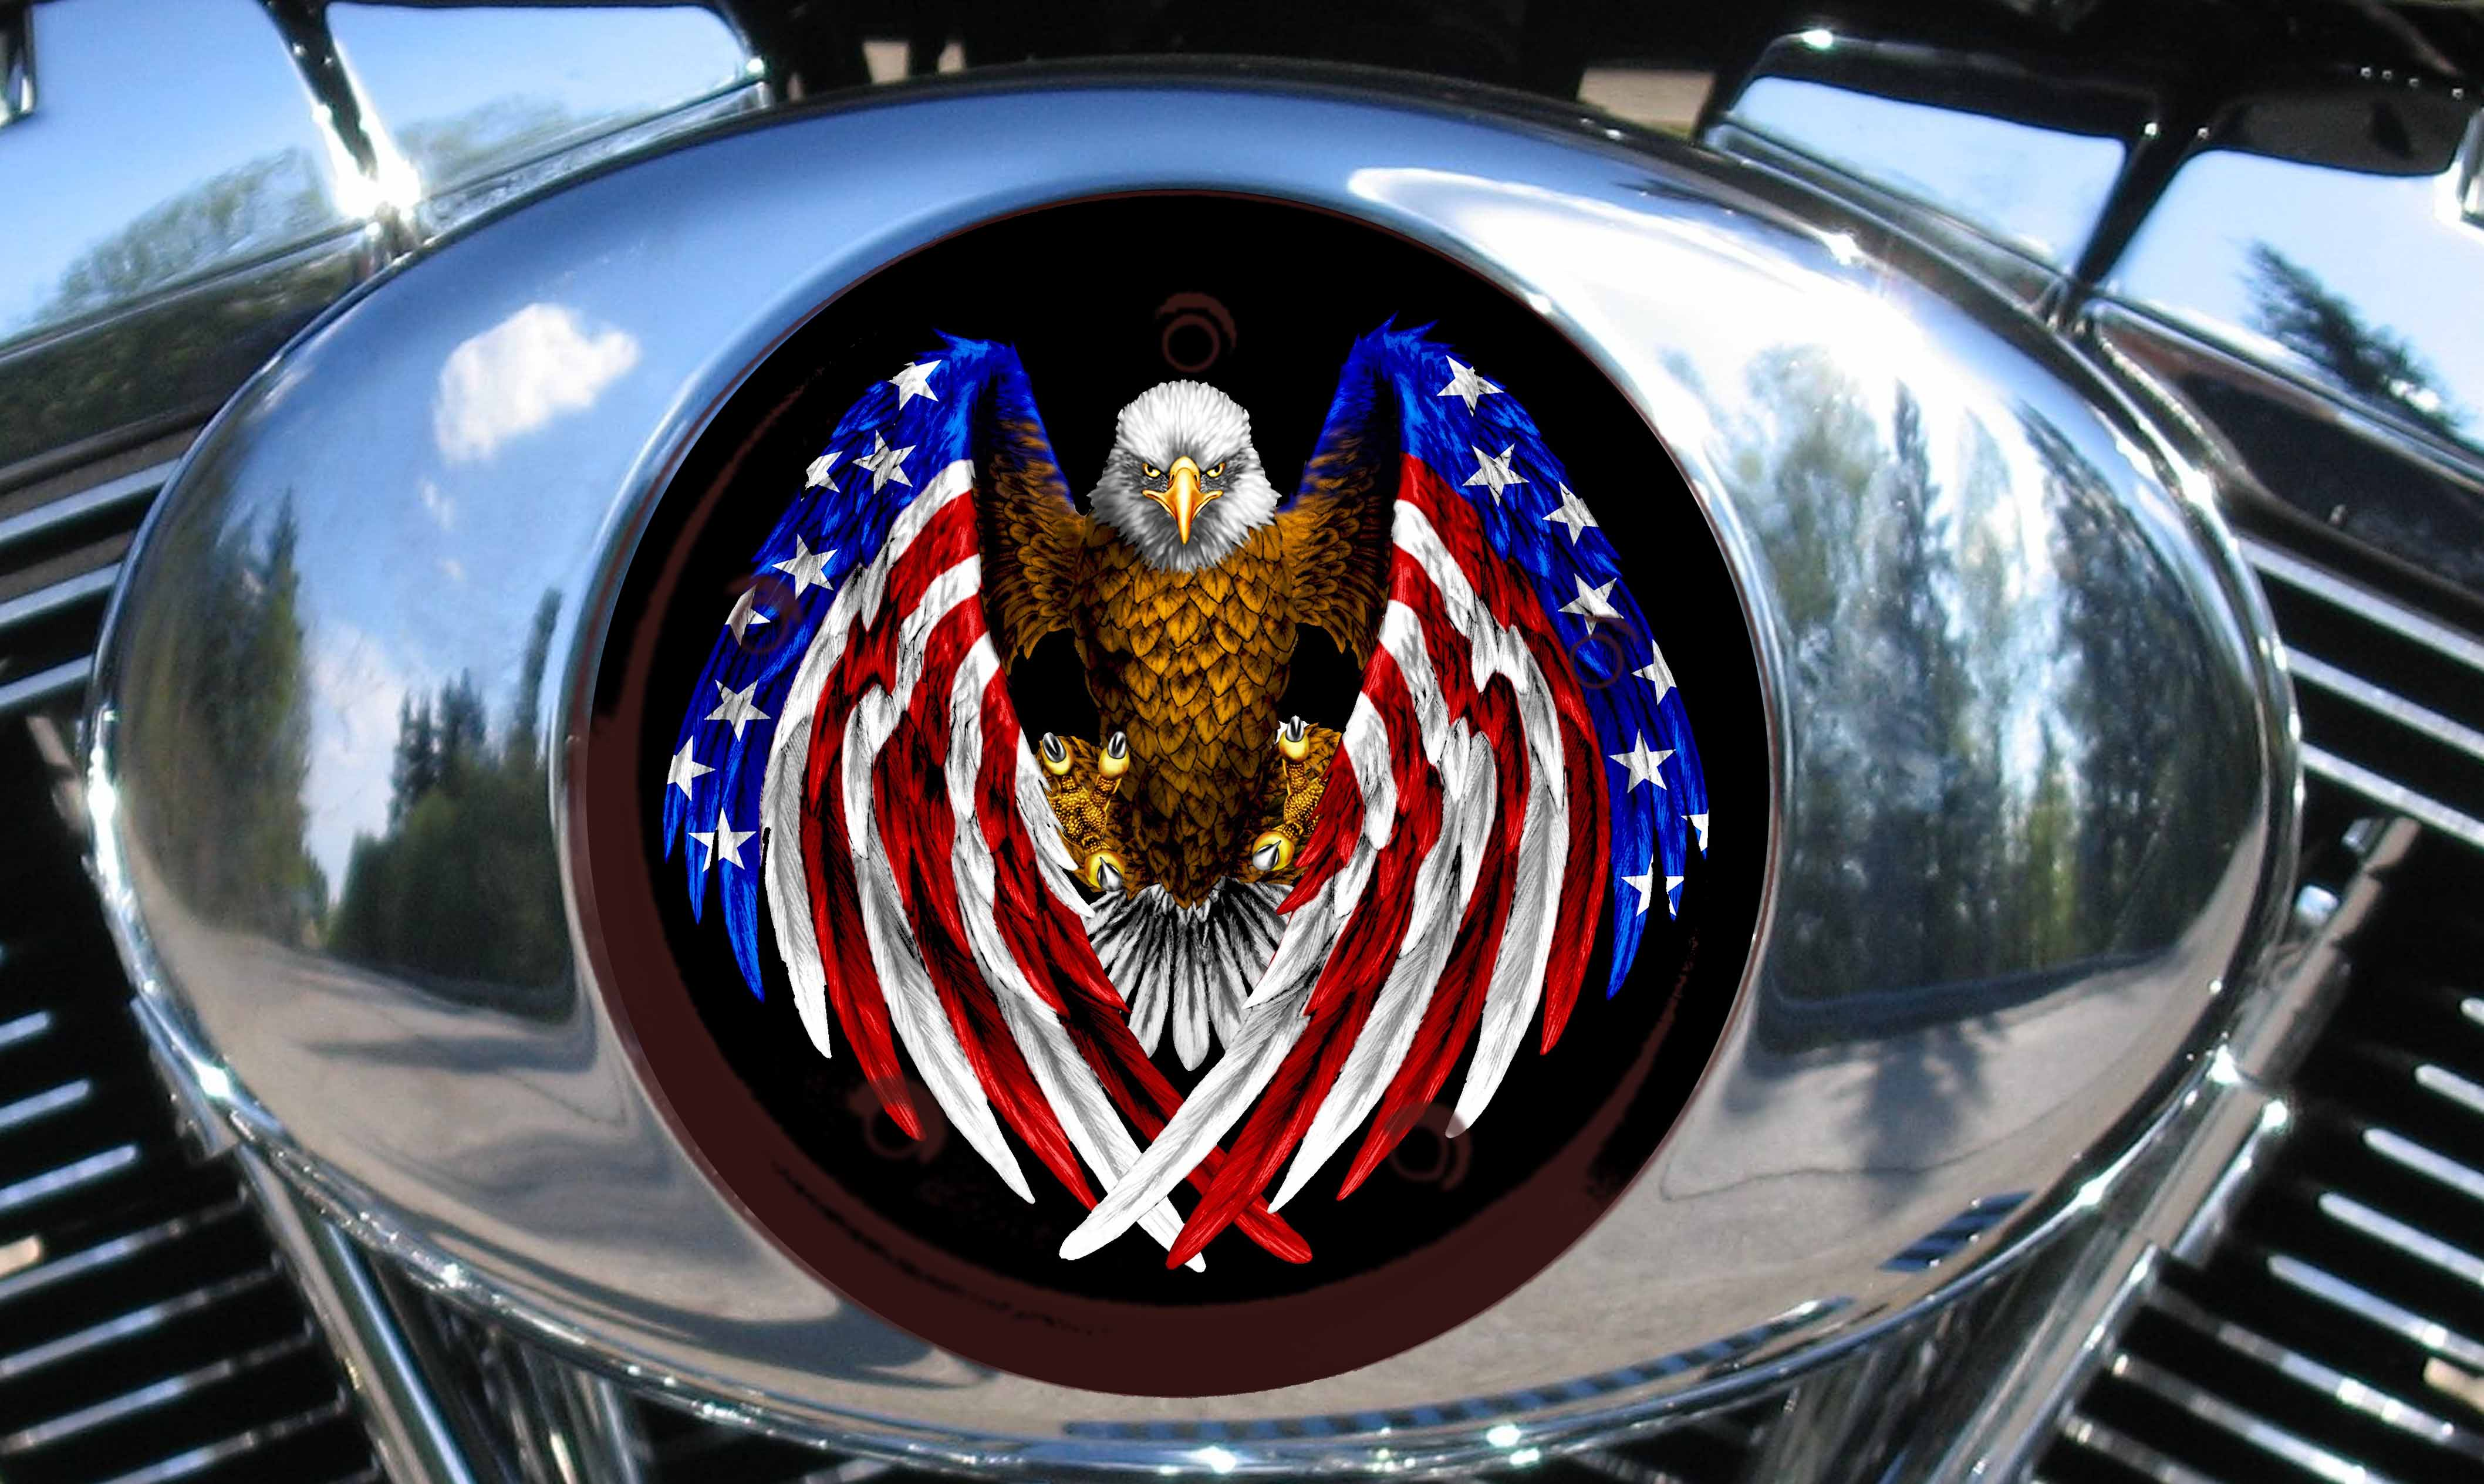 AIR CLEANER INSERT 1999-2014 MODELS EAGLE/FLAG wings